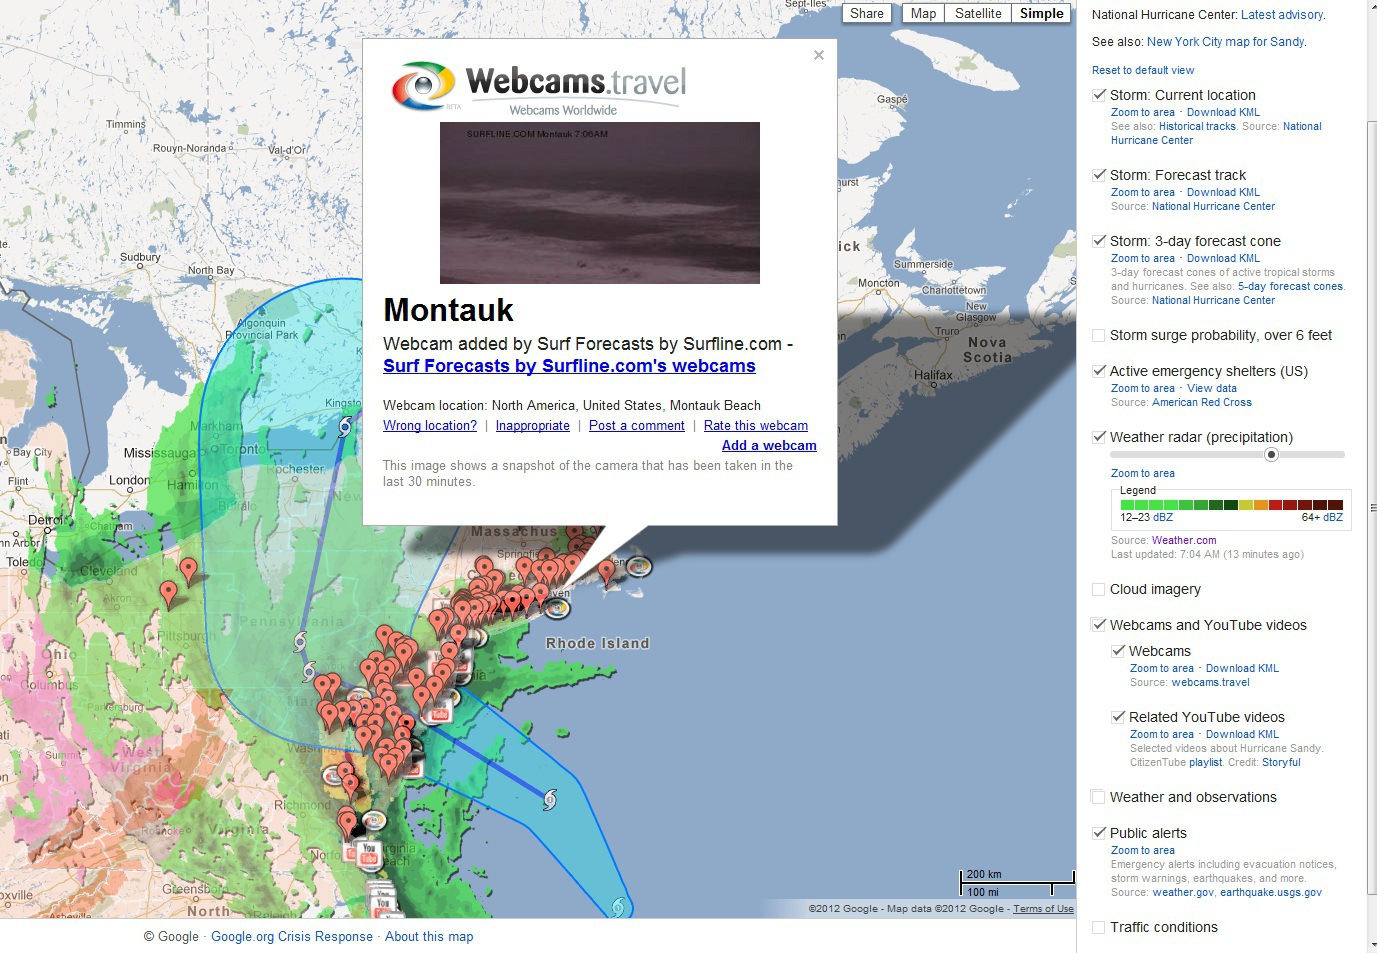 Google Puts Hurricane Sandy on the Crisis Map: Helping the Eastern Seaboard Through Frankenstorm